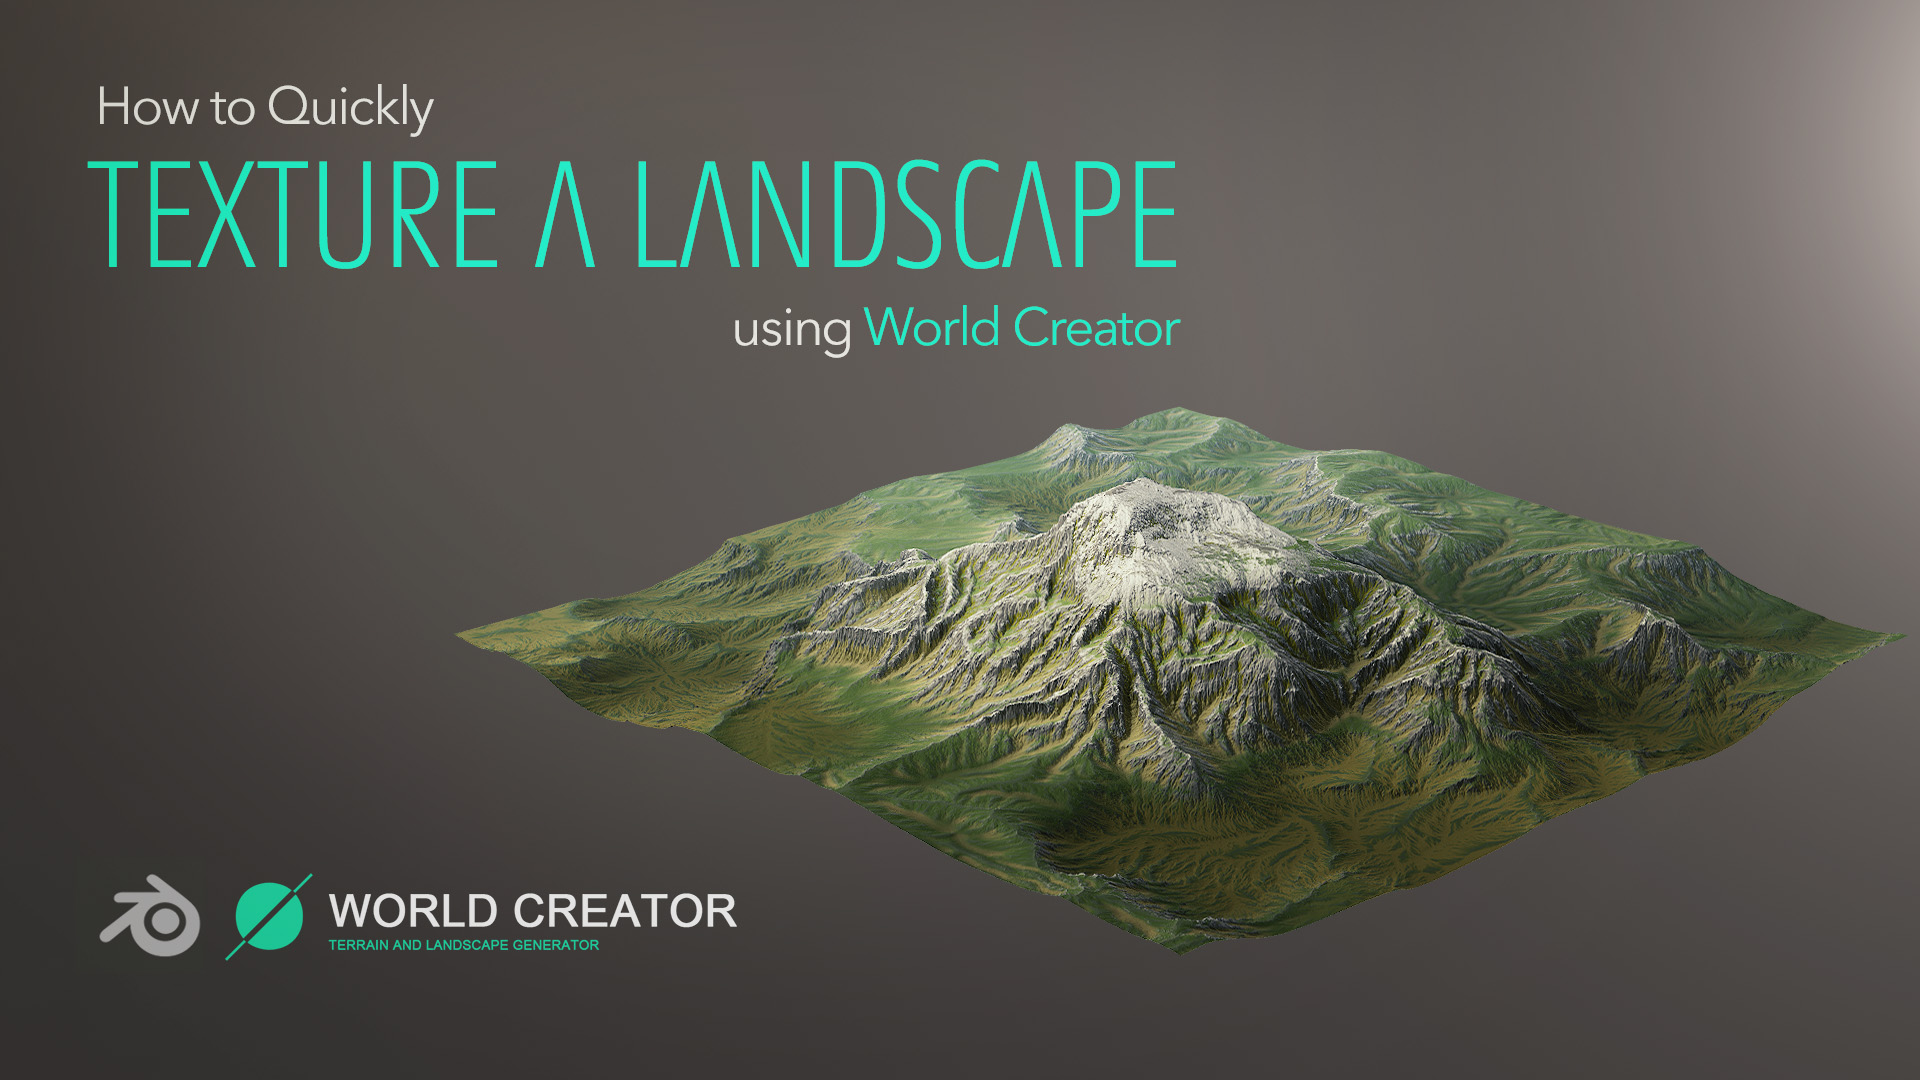 A follow-up to the previous World Creator tutorial, this time focusing on how to take your created landscape, texture it and render in Blender.